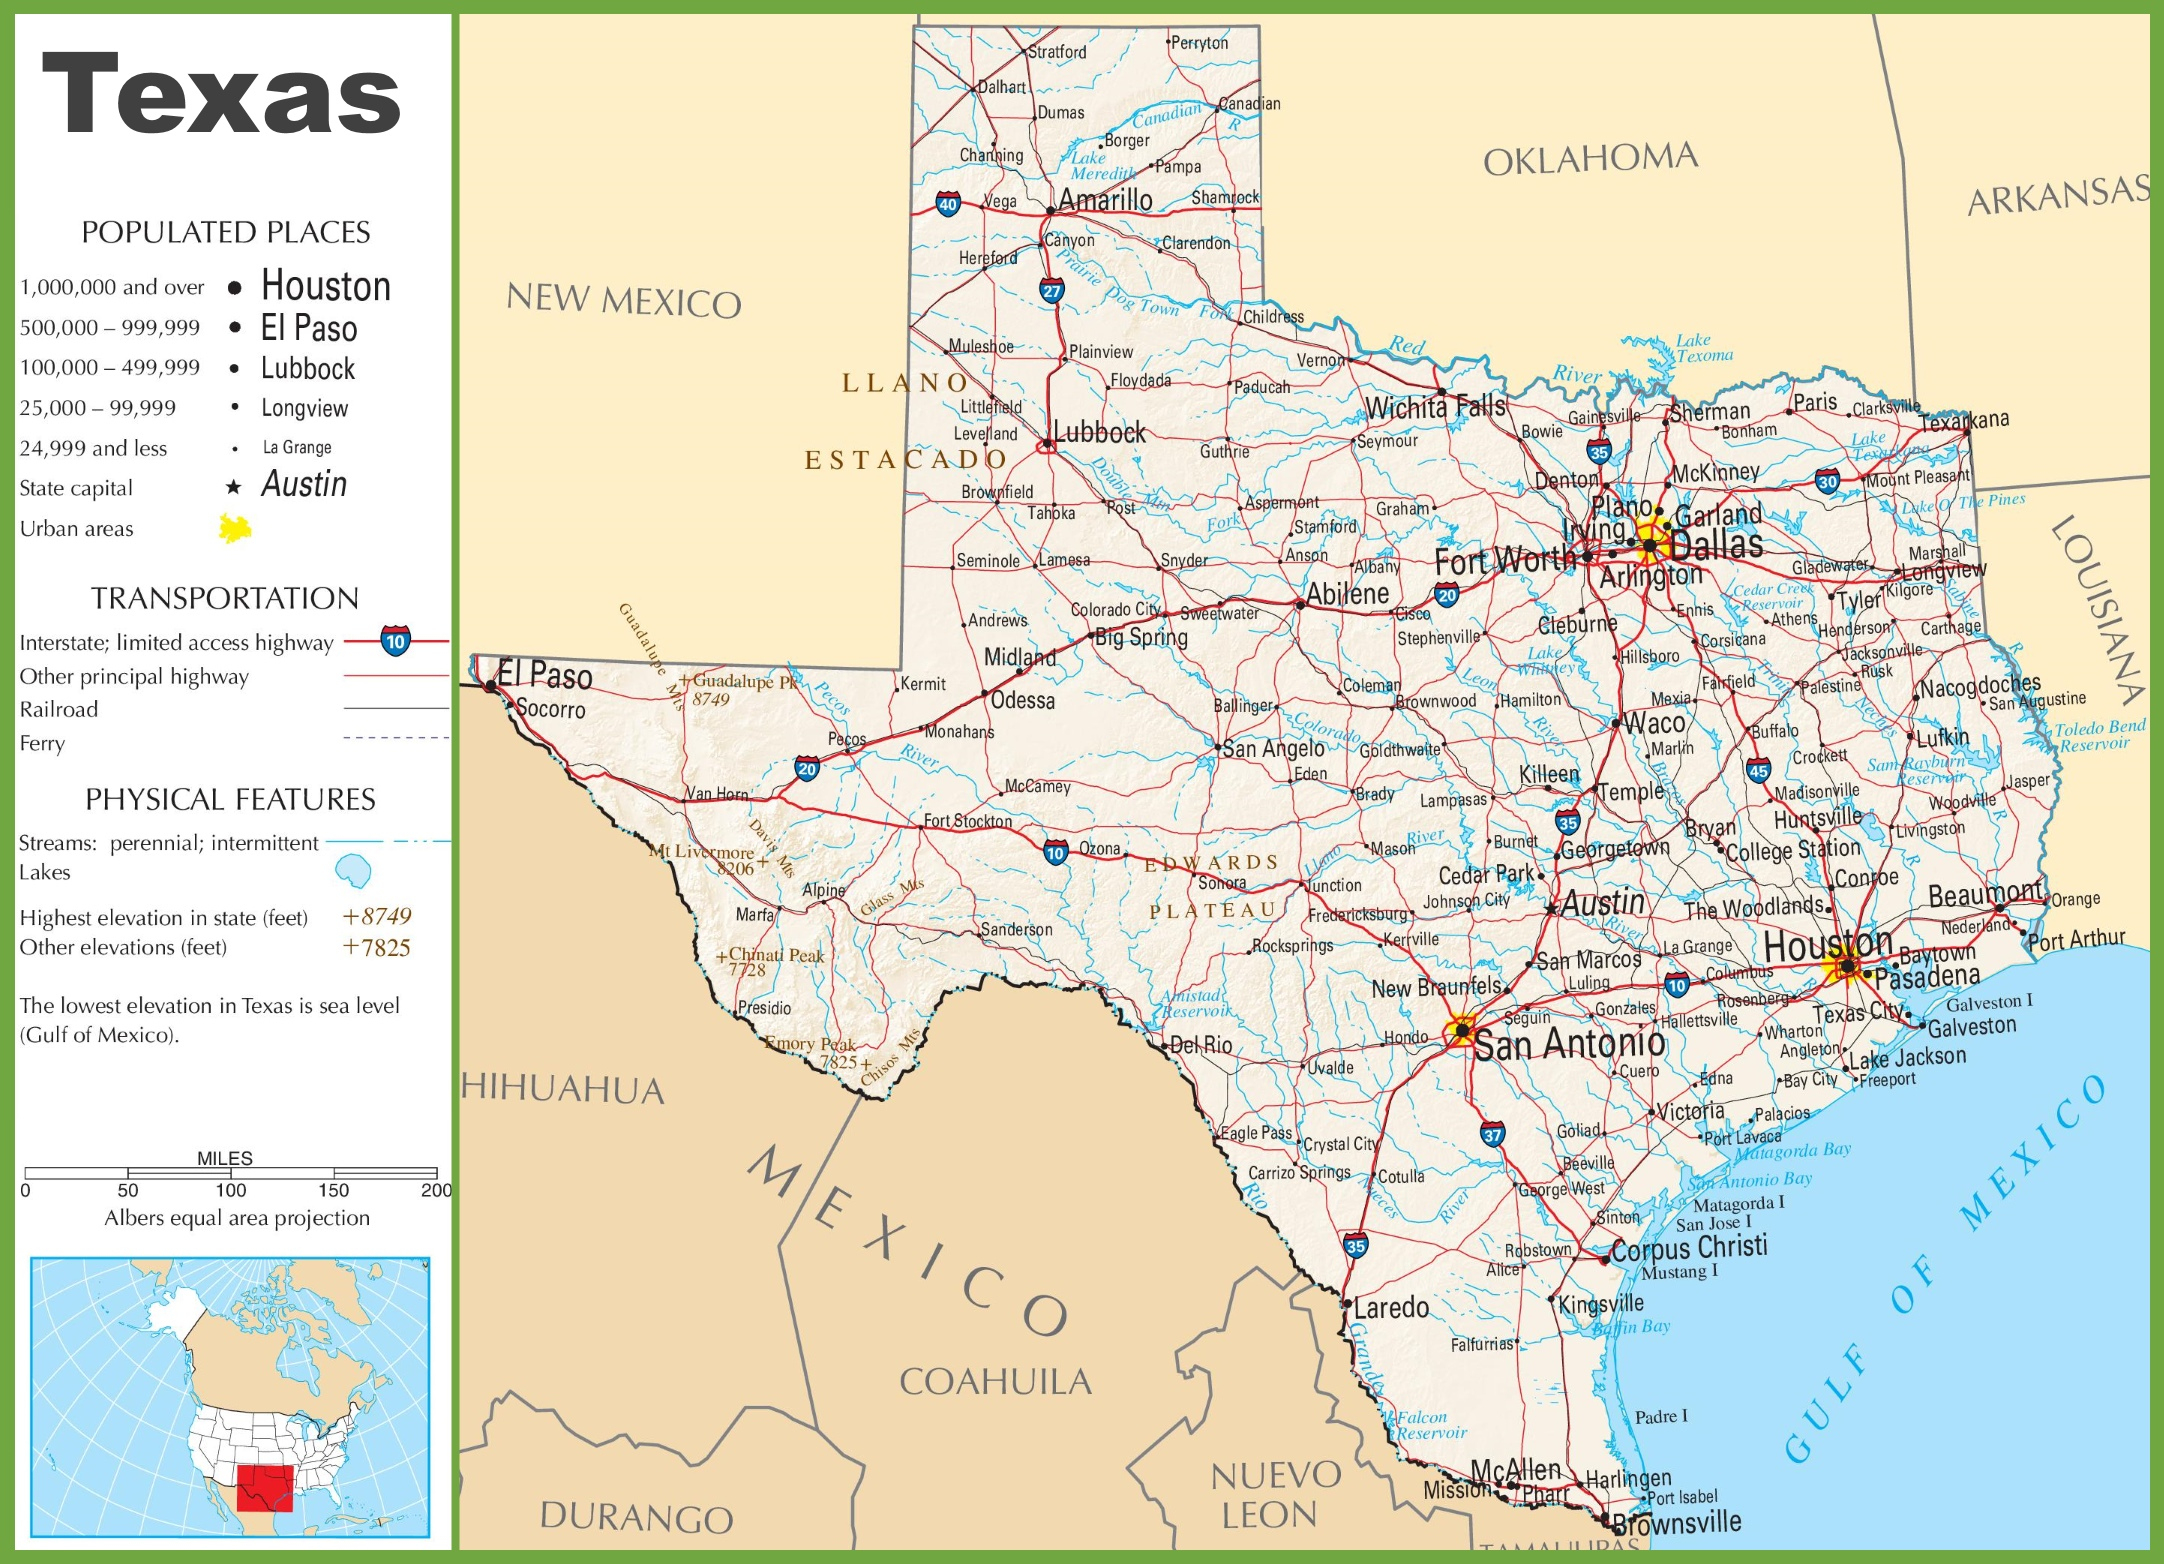 Texas Highway Map - Printable State Maps With Highways